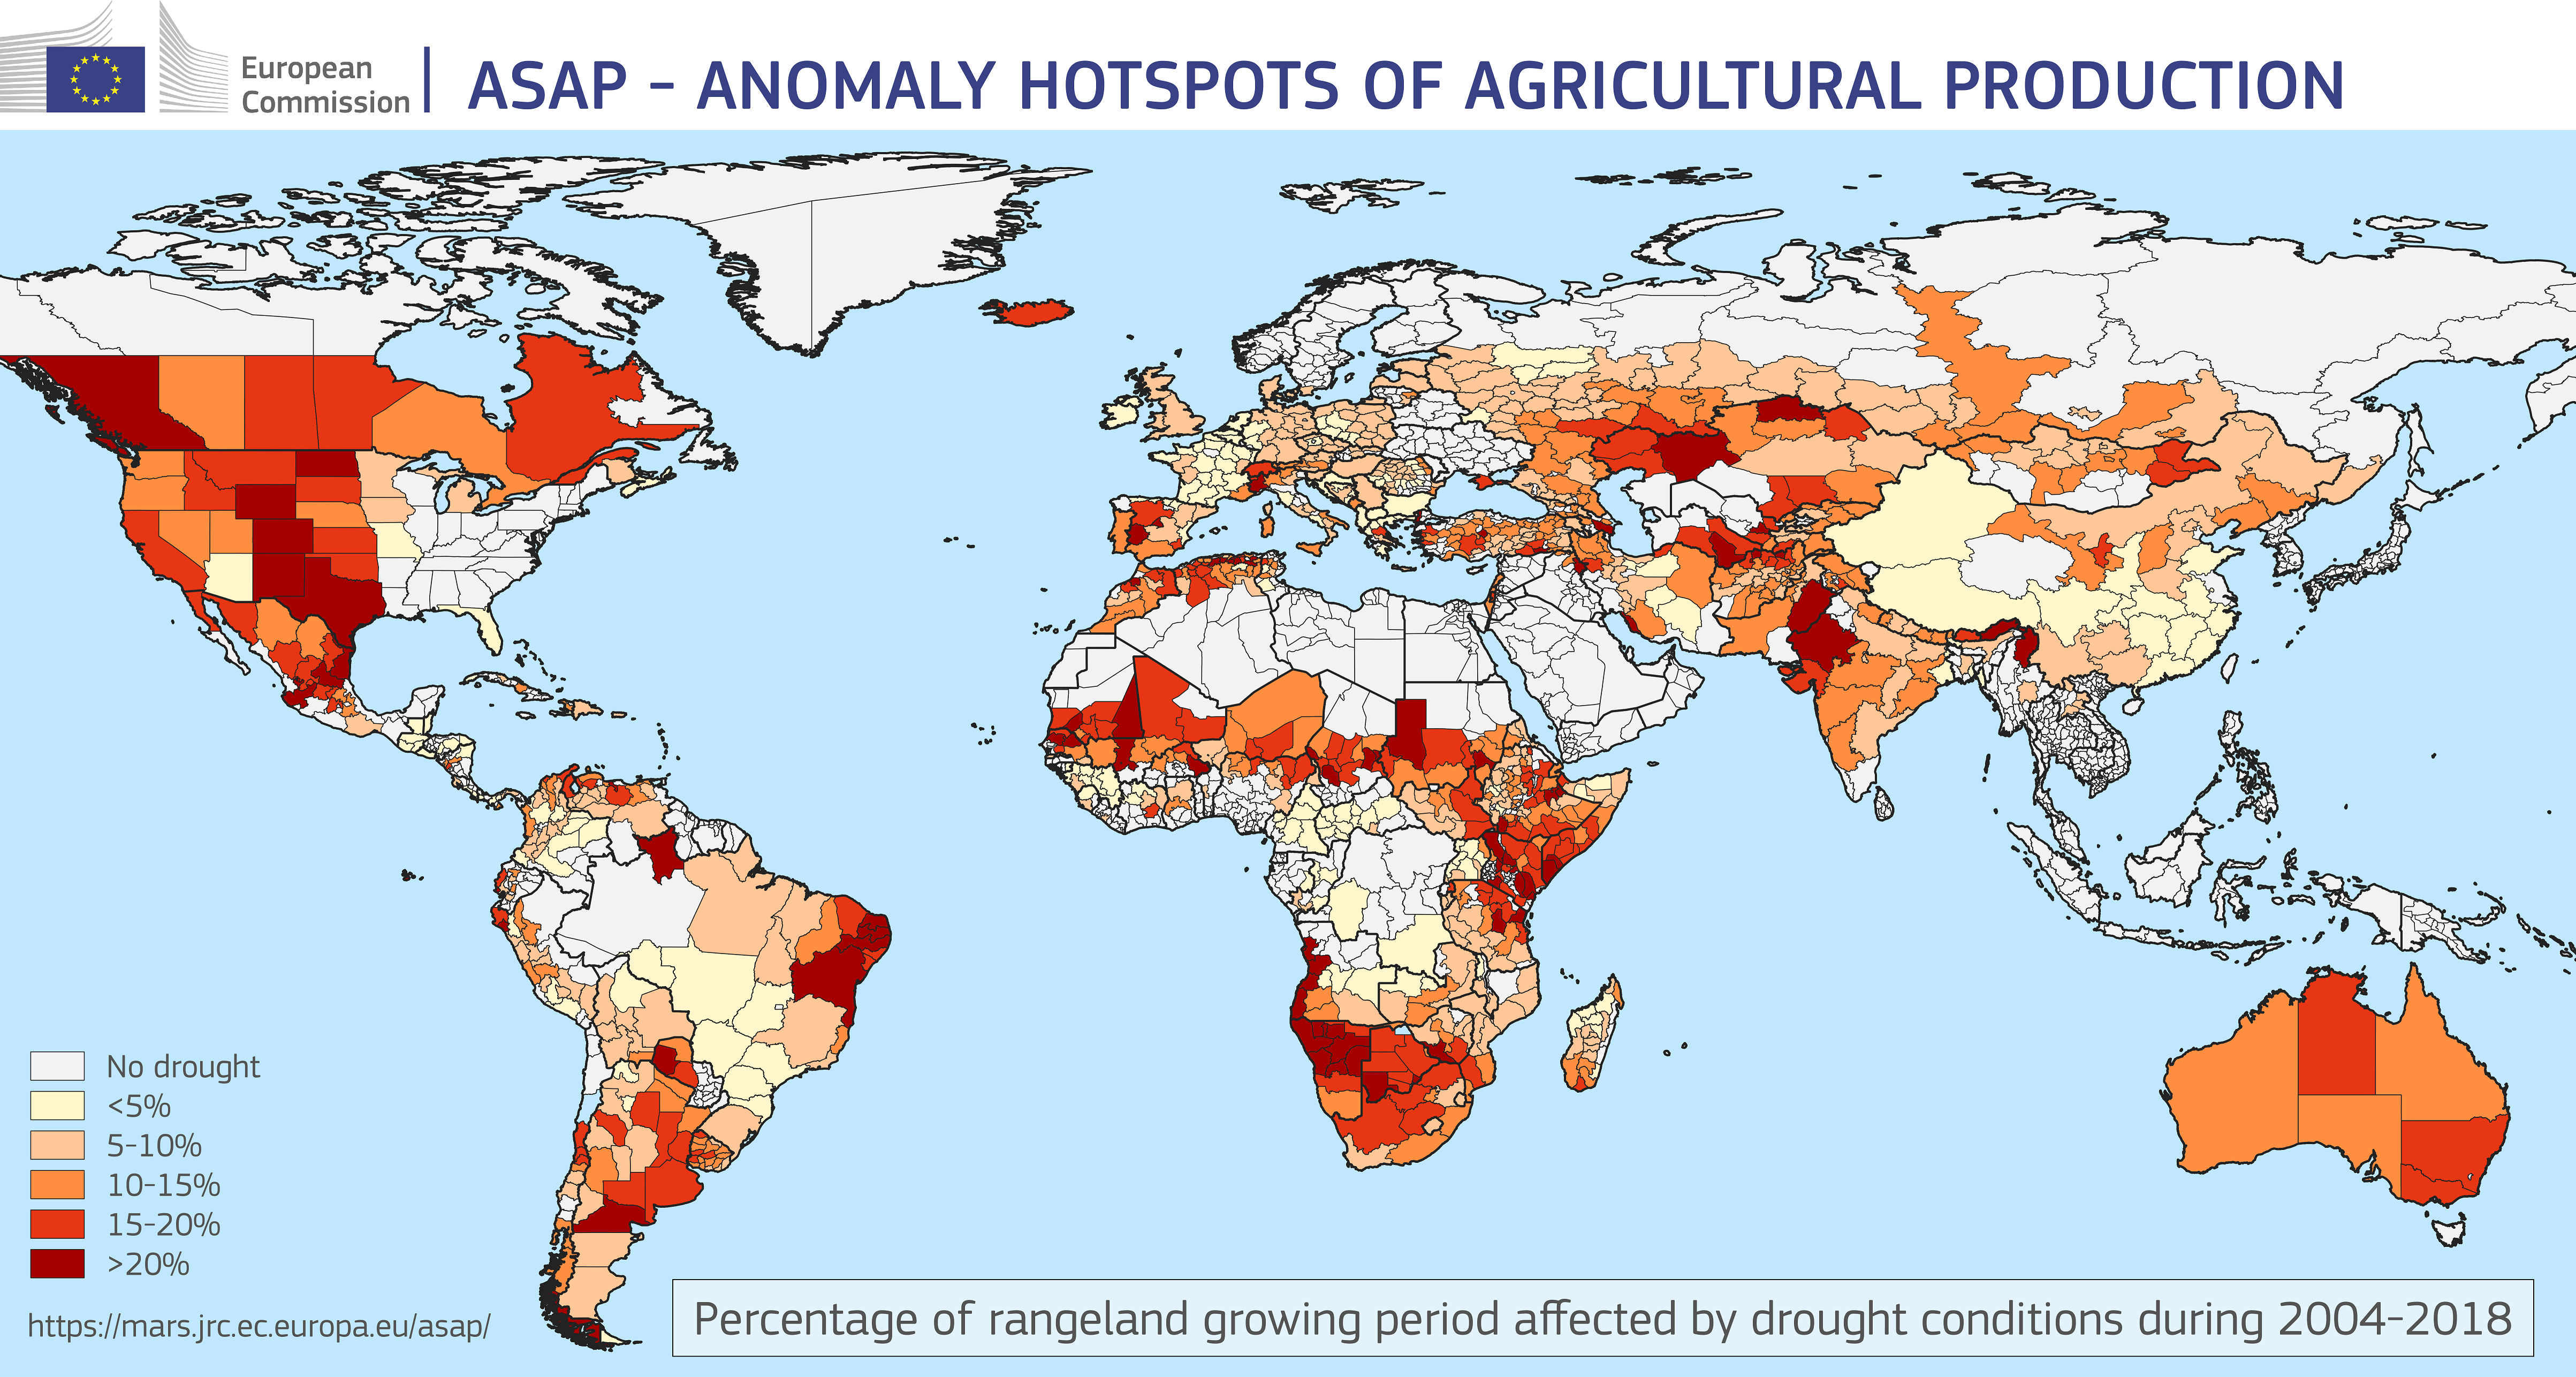 ASAP - Anomaly HotSpots of Agricultural Production - European Commission